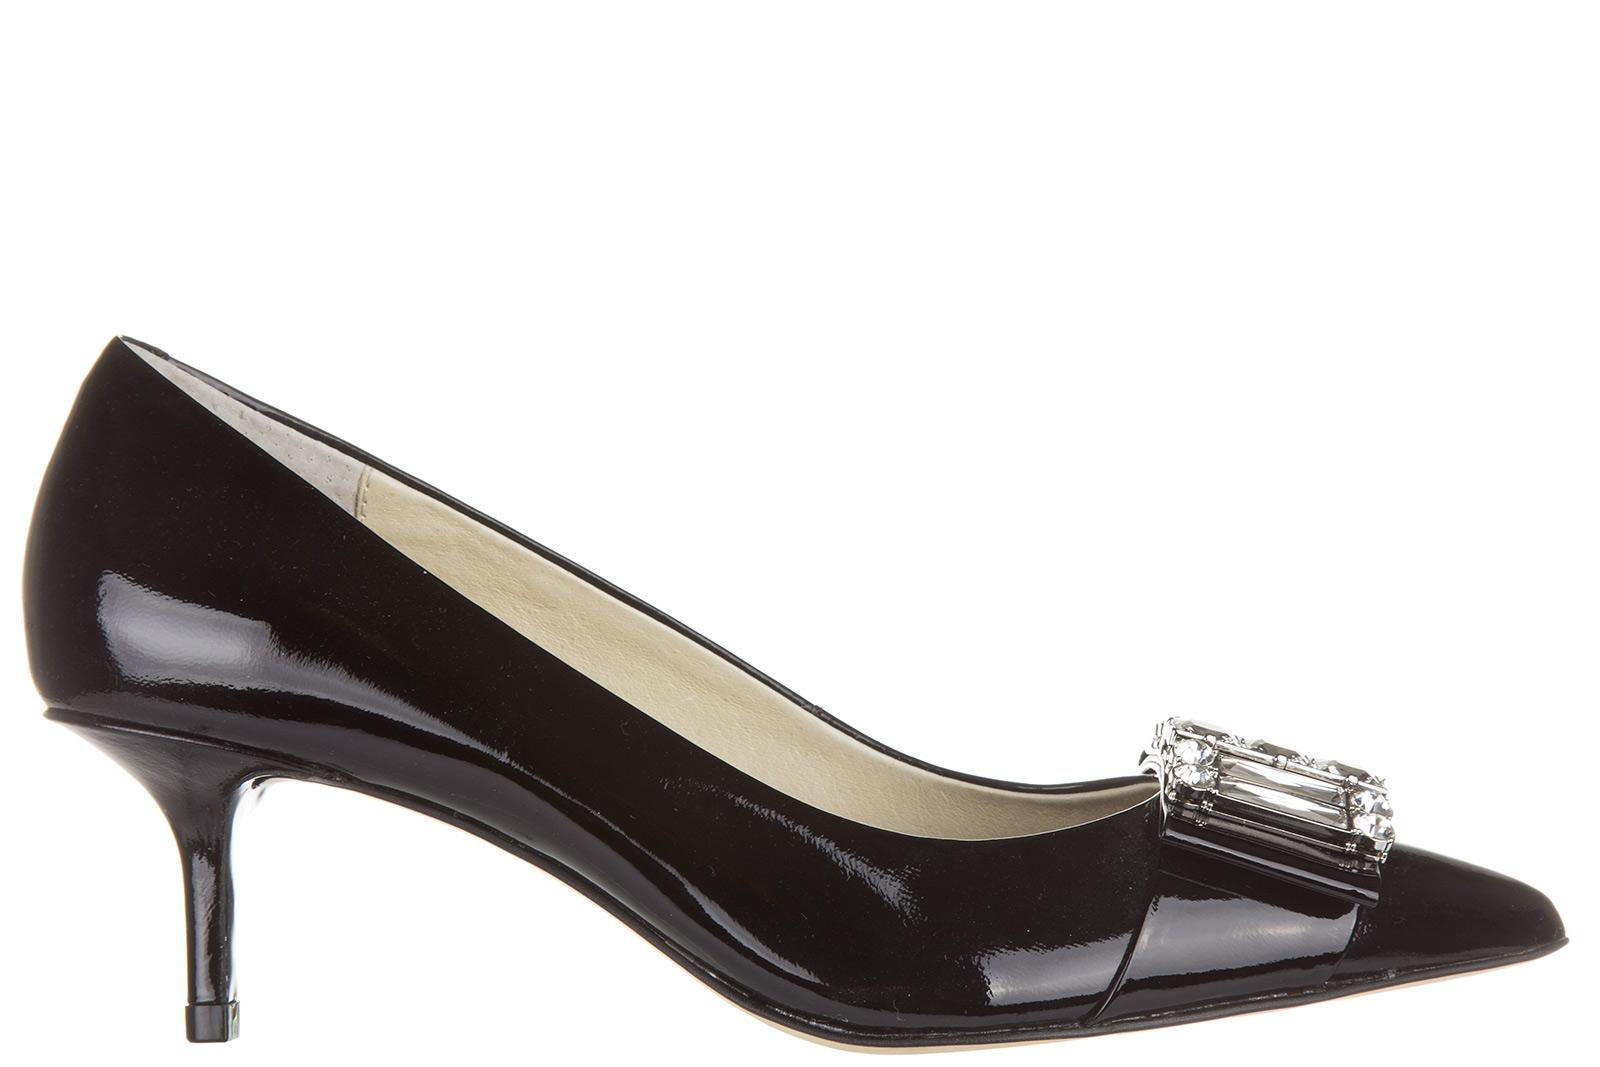 Michael Kors Women's Leather Pumps Court Shoes High Heel Michelle In Black